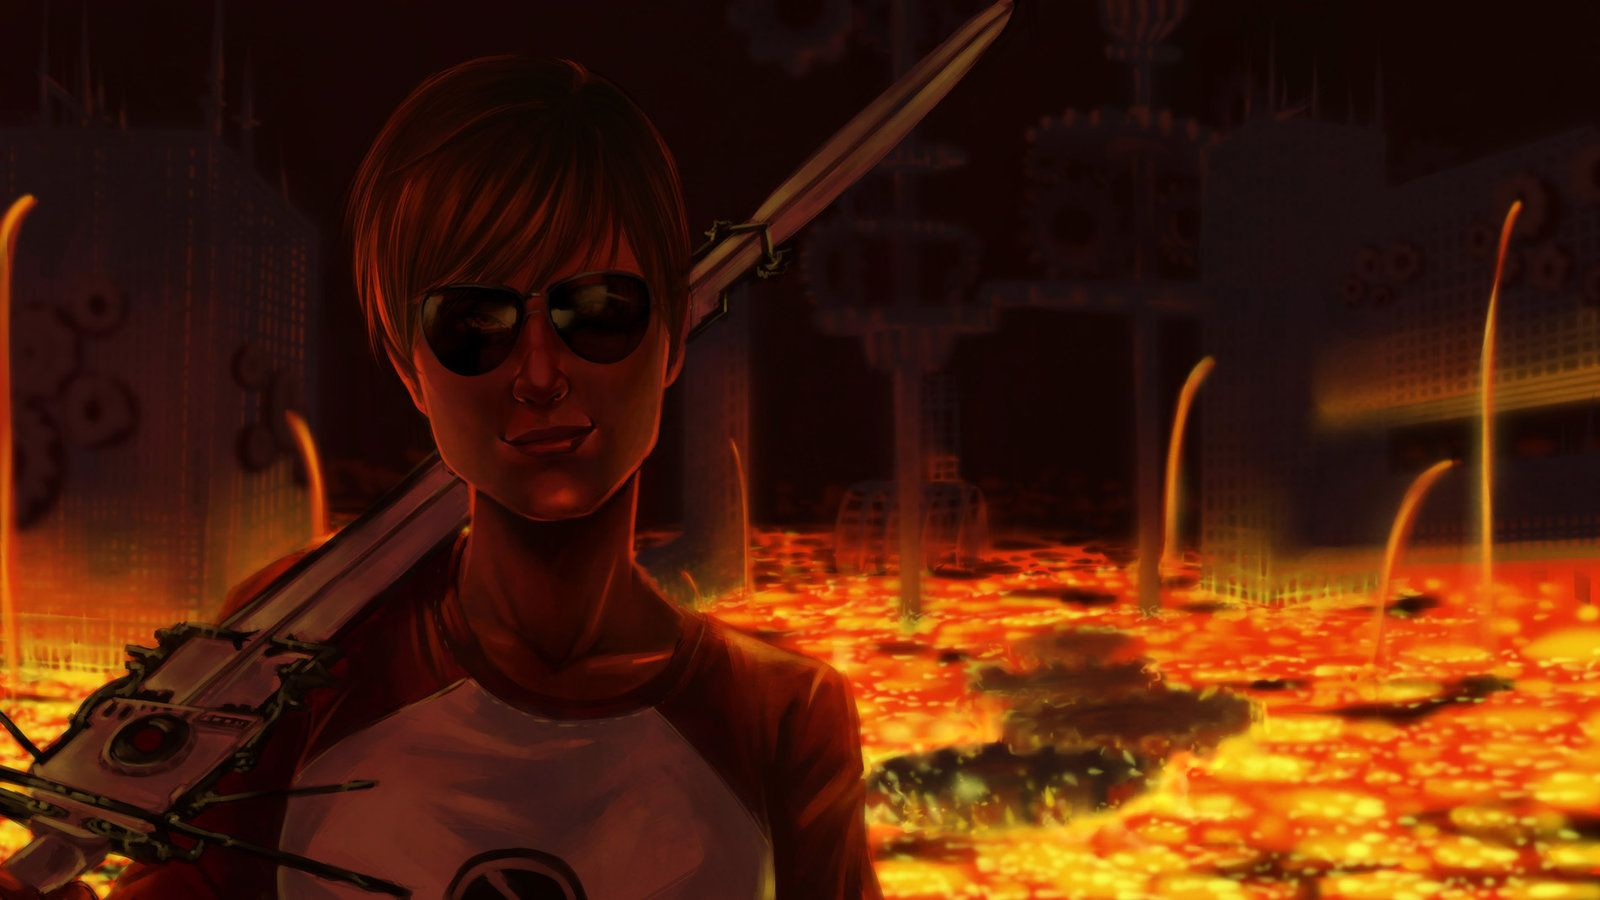 Dave Strider in the Land of Heat and clockwork by EiraQueenofSnow.deviantart.com on @deviantART